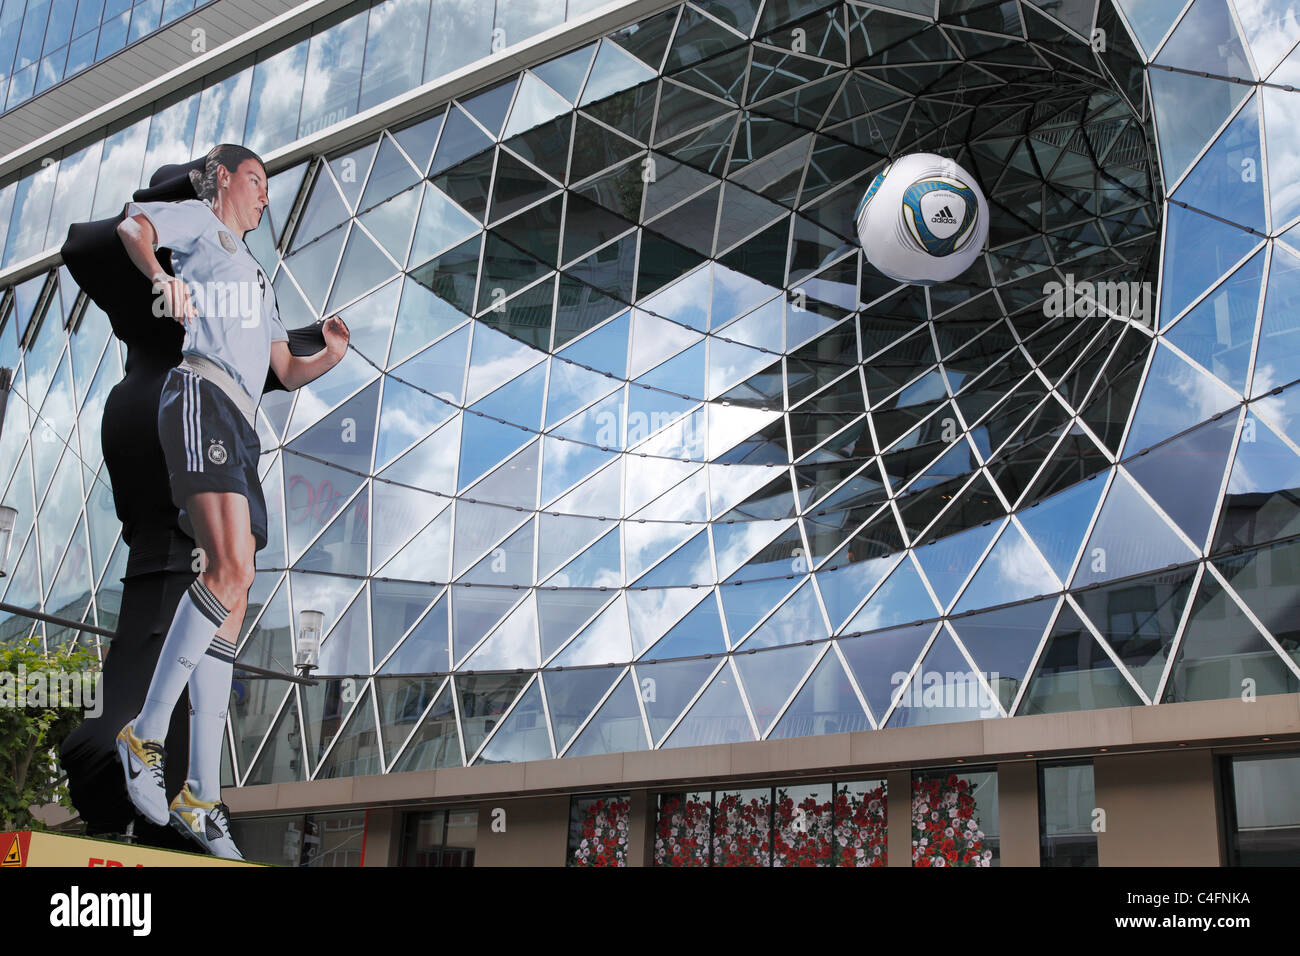 advertising for FIFA Woman's World Cup Germany 2011 with Birgit Prinz in the city centre of Frankfurt, Germany - Stock Image